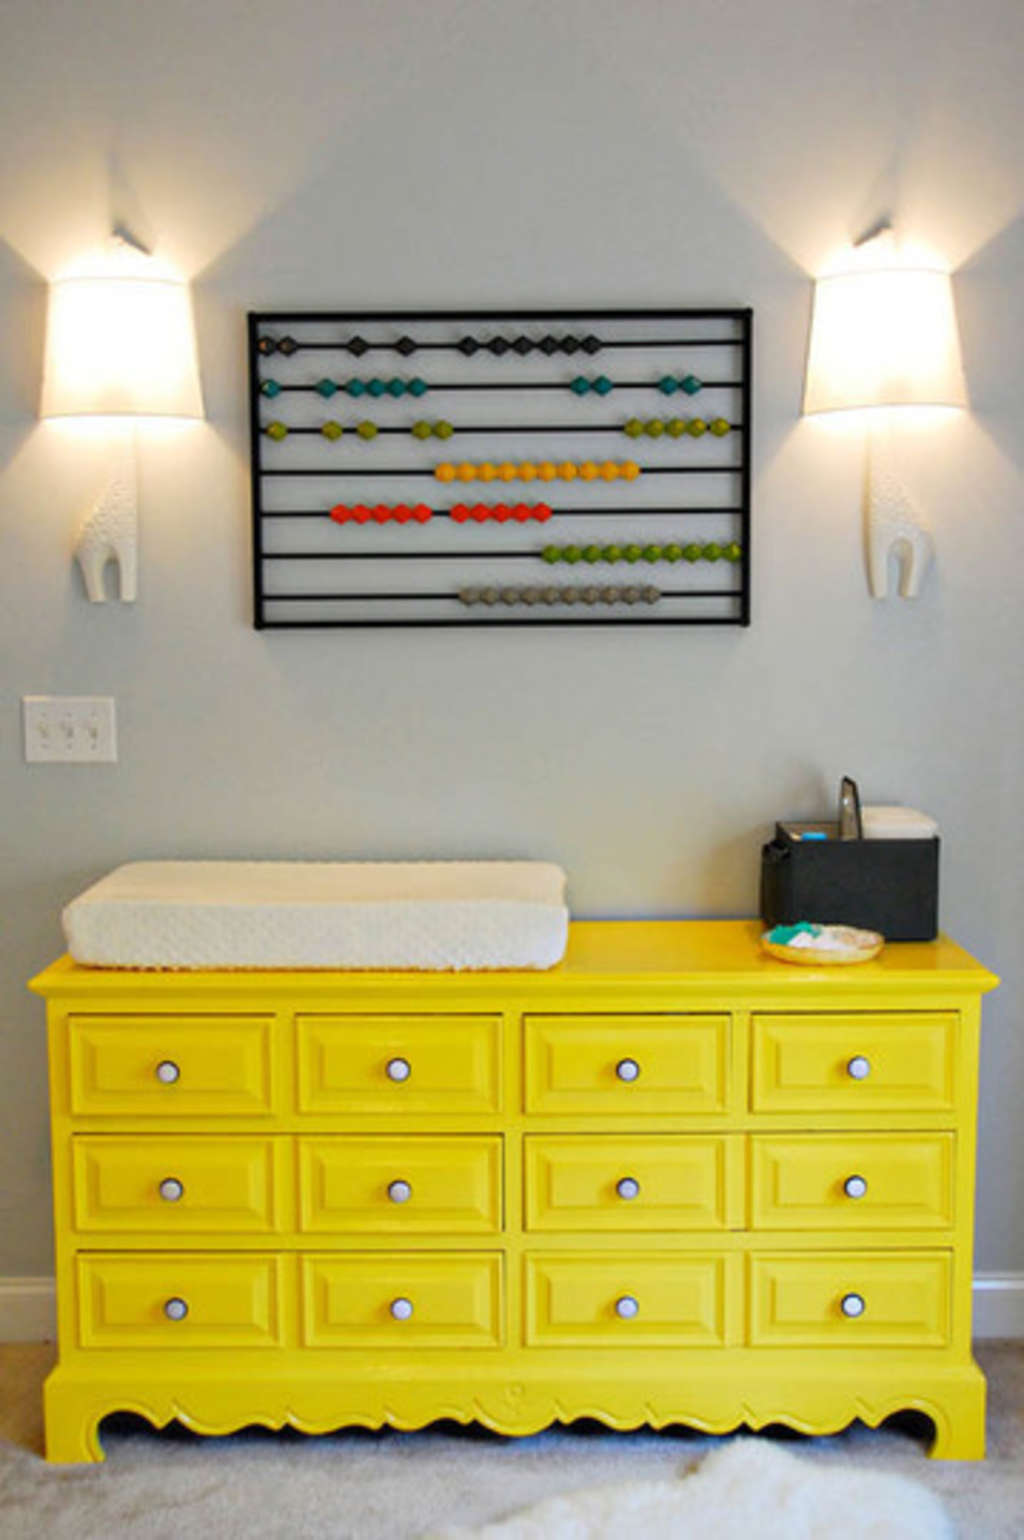 Objects as Wall Decor in Kids\' Rooms | Apartment Therapy